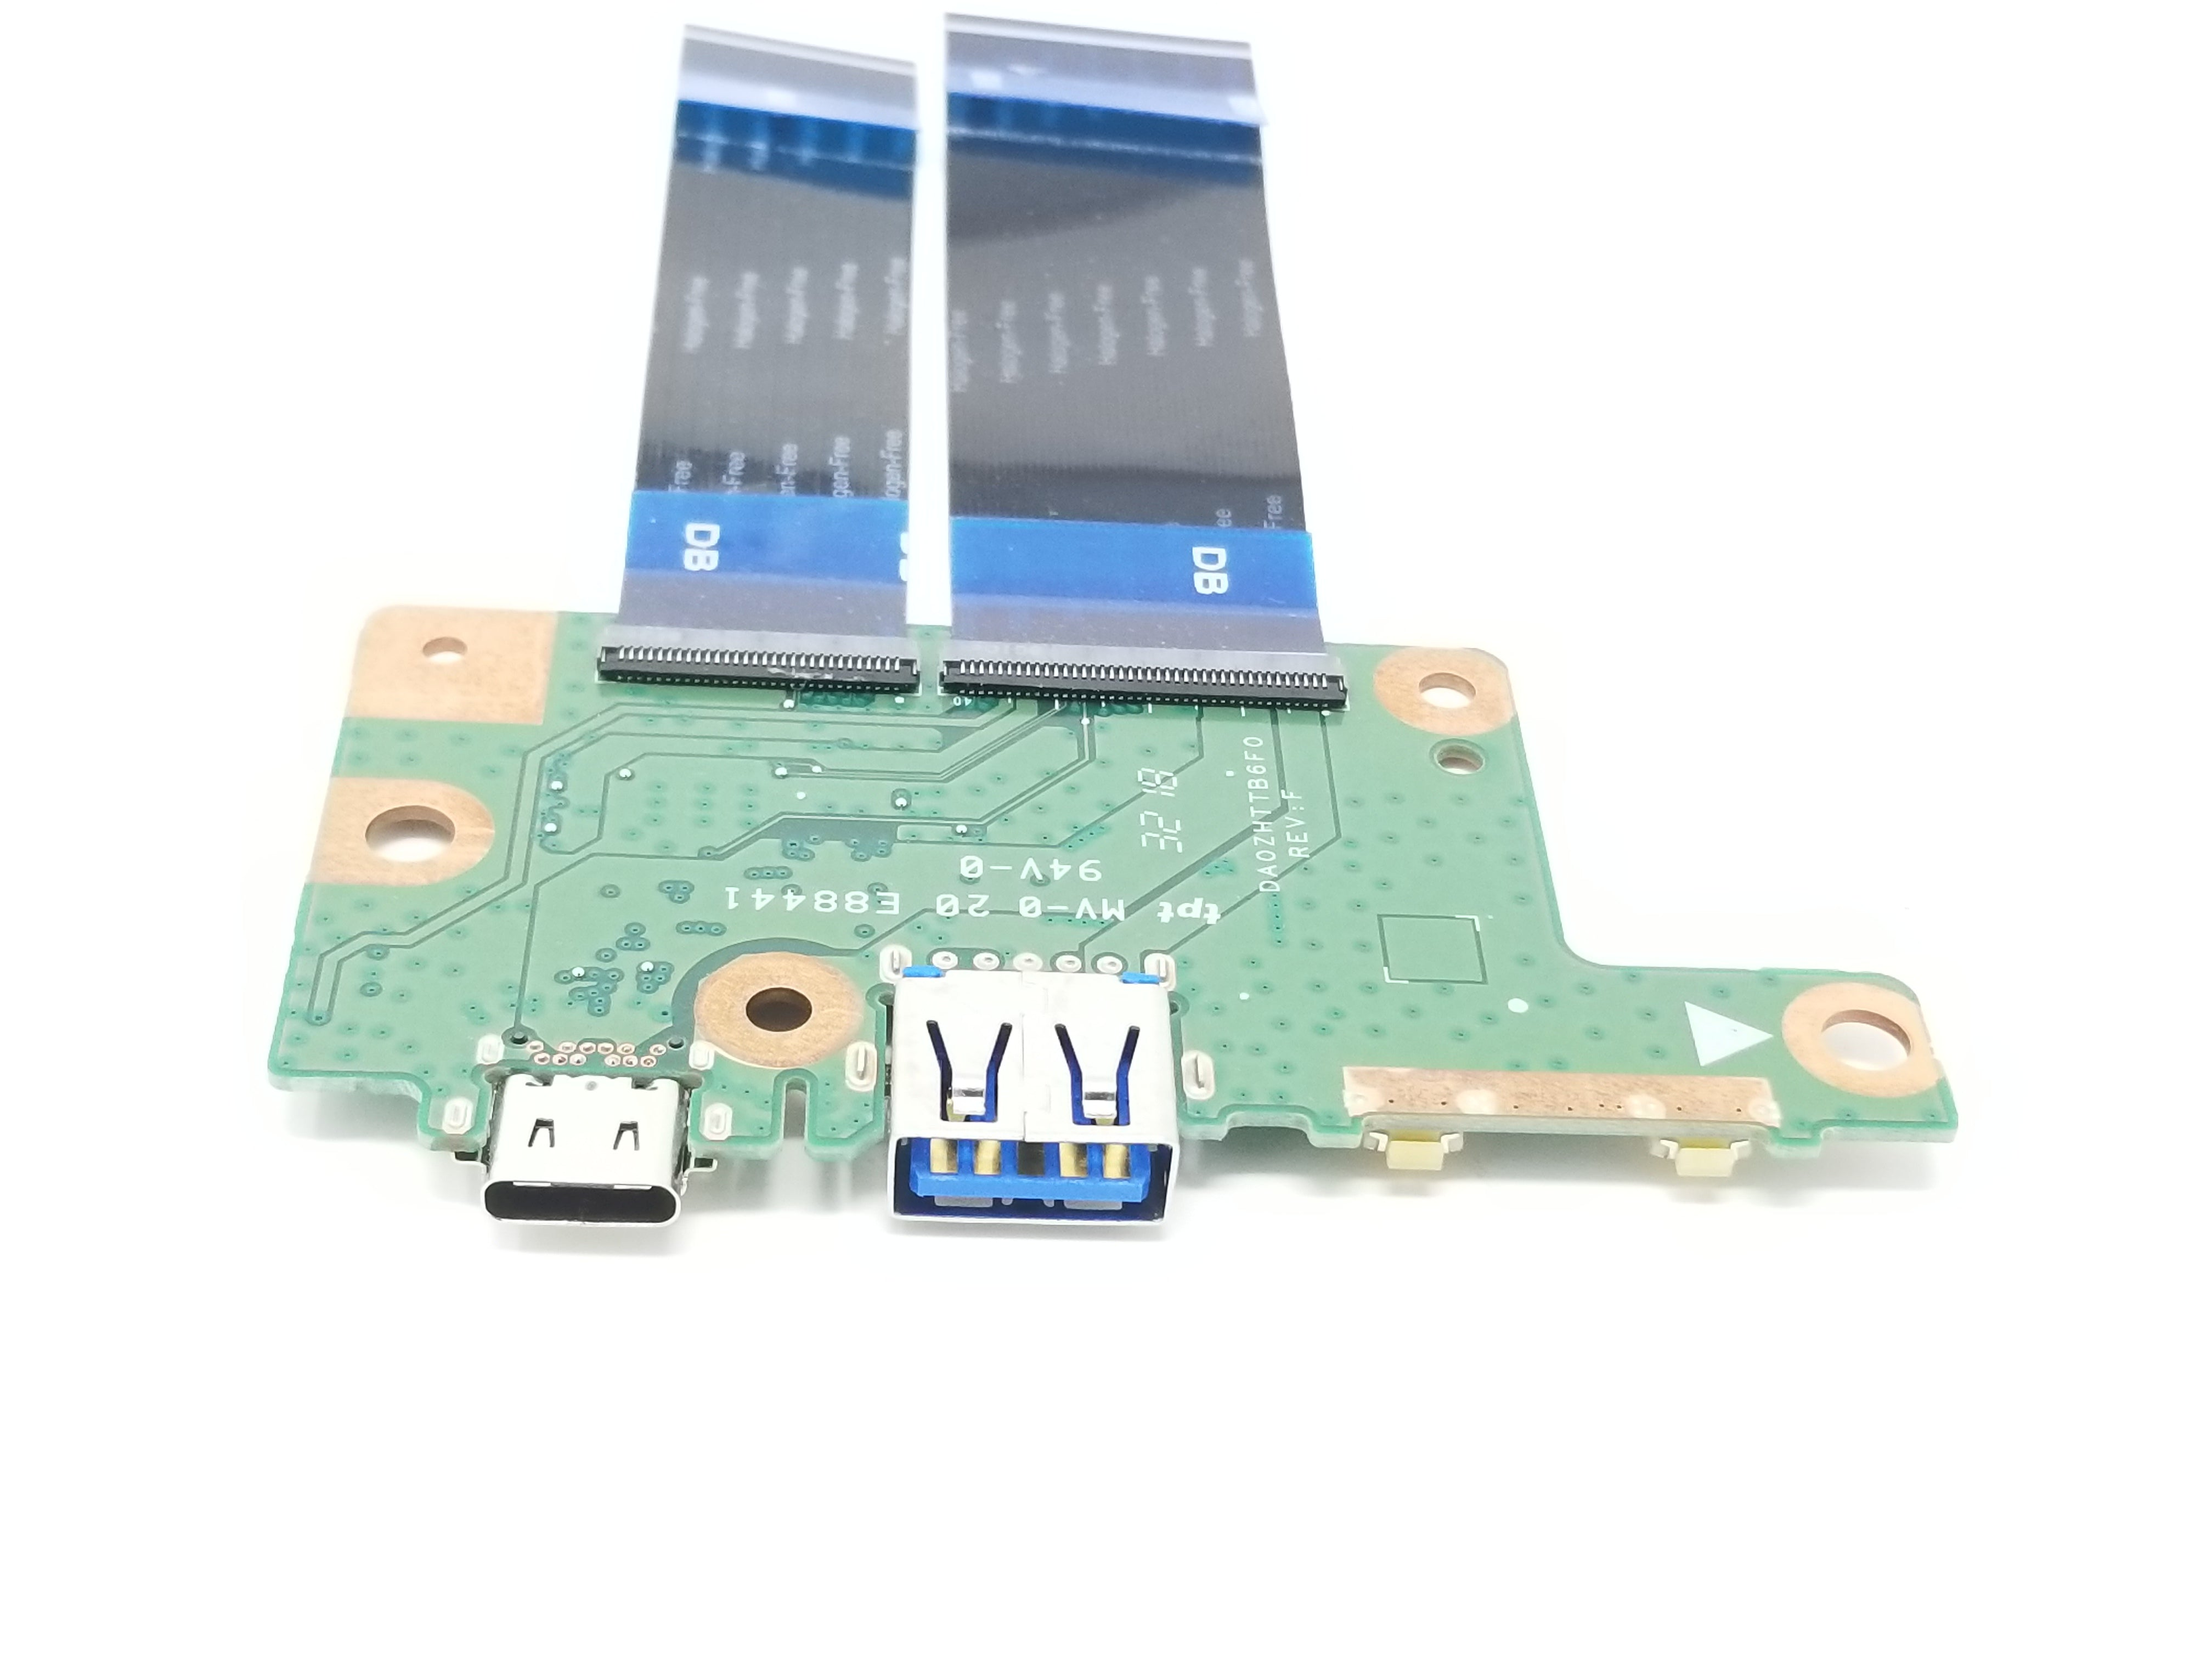 Acer Chromebook 11 R751T Series USB Board Assembly w/Cables - 55.GPZN7.001